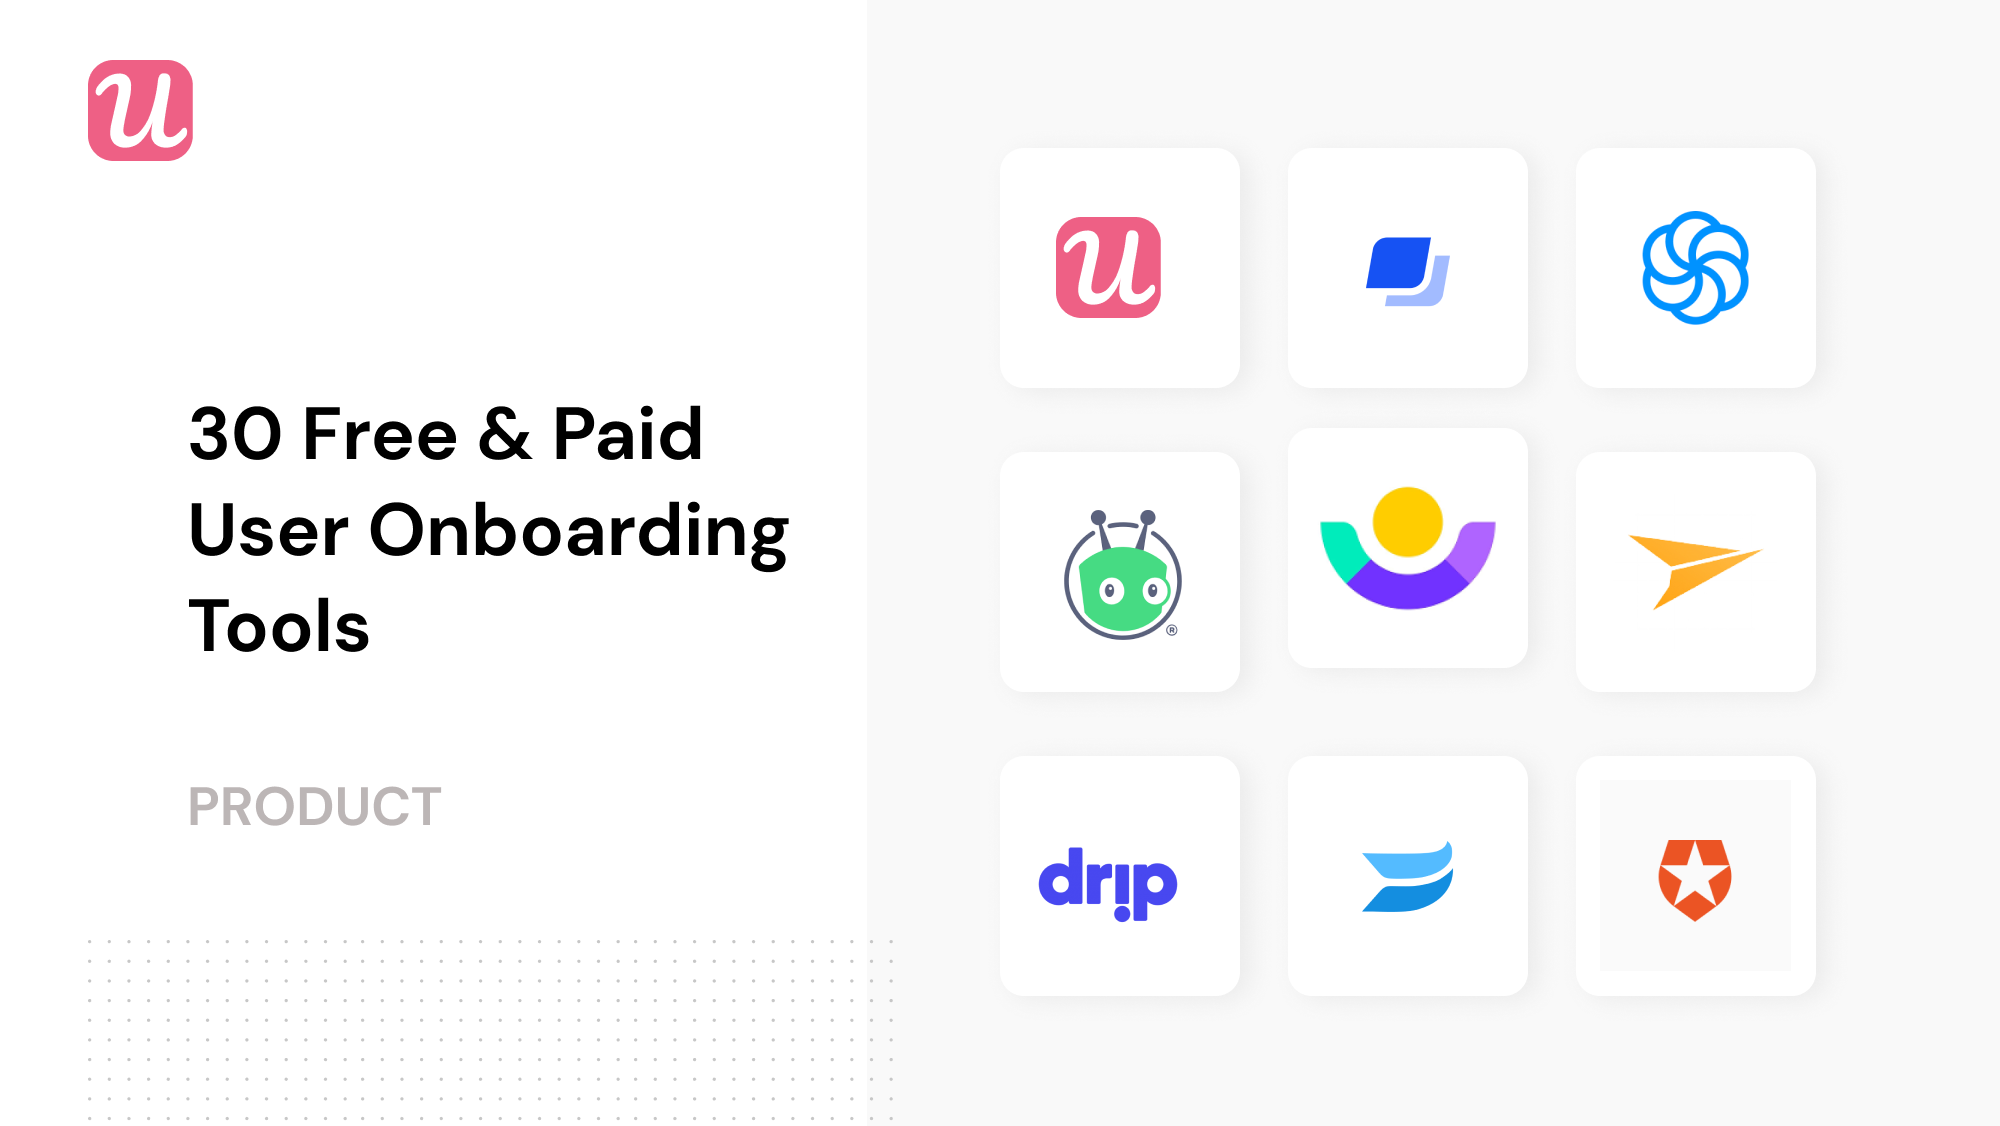 free and paid user onboarding tools